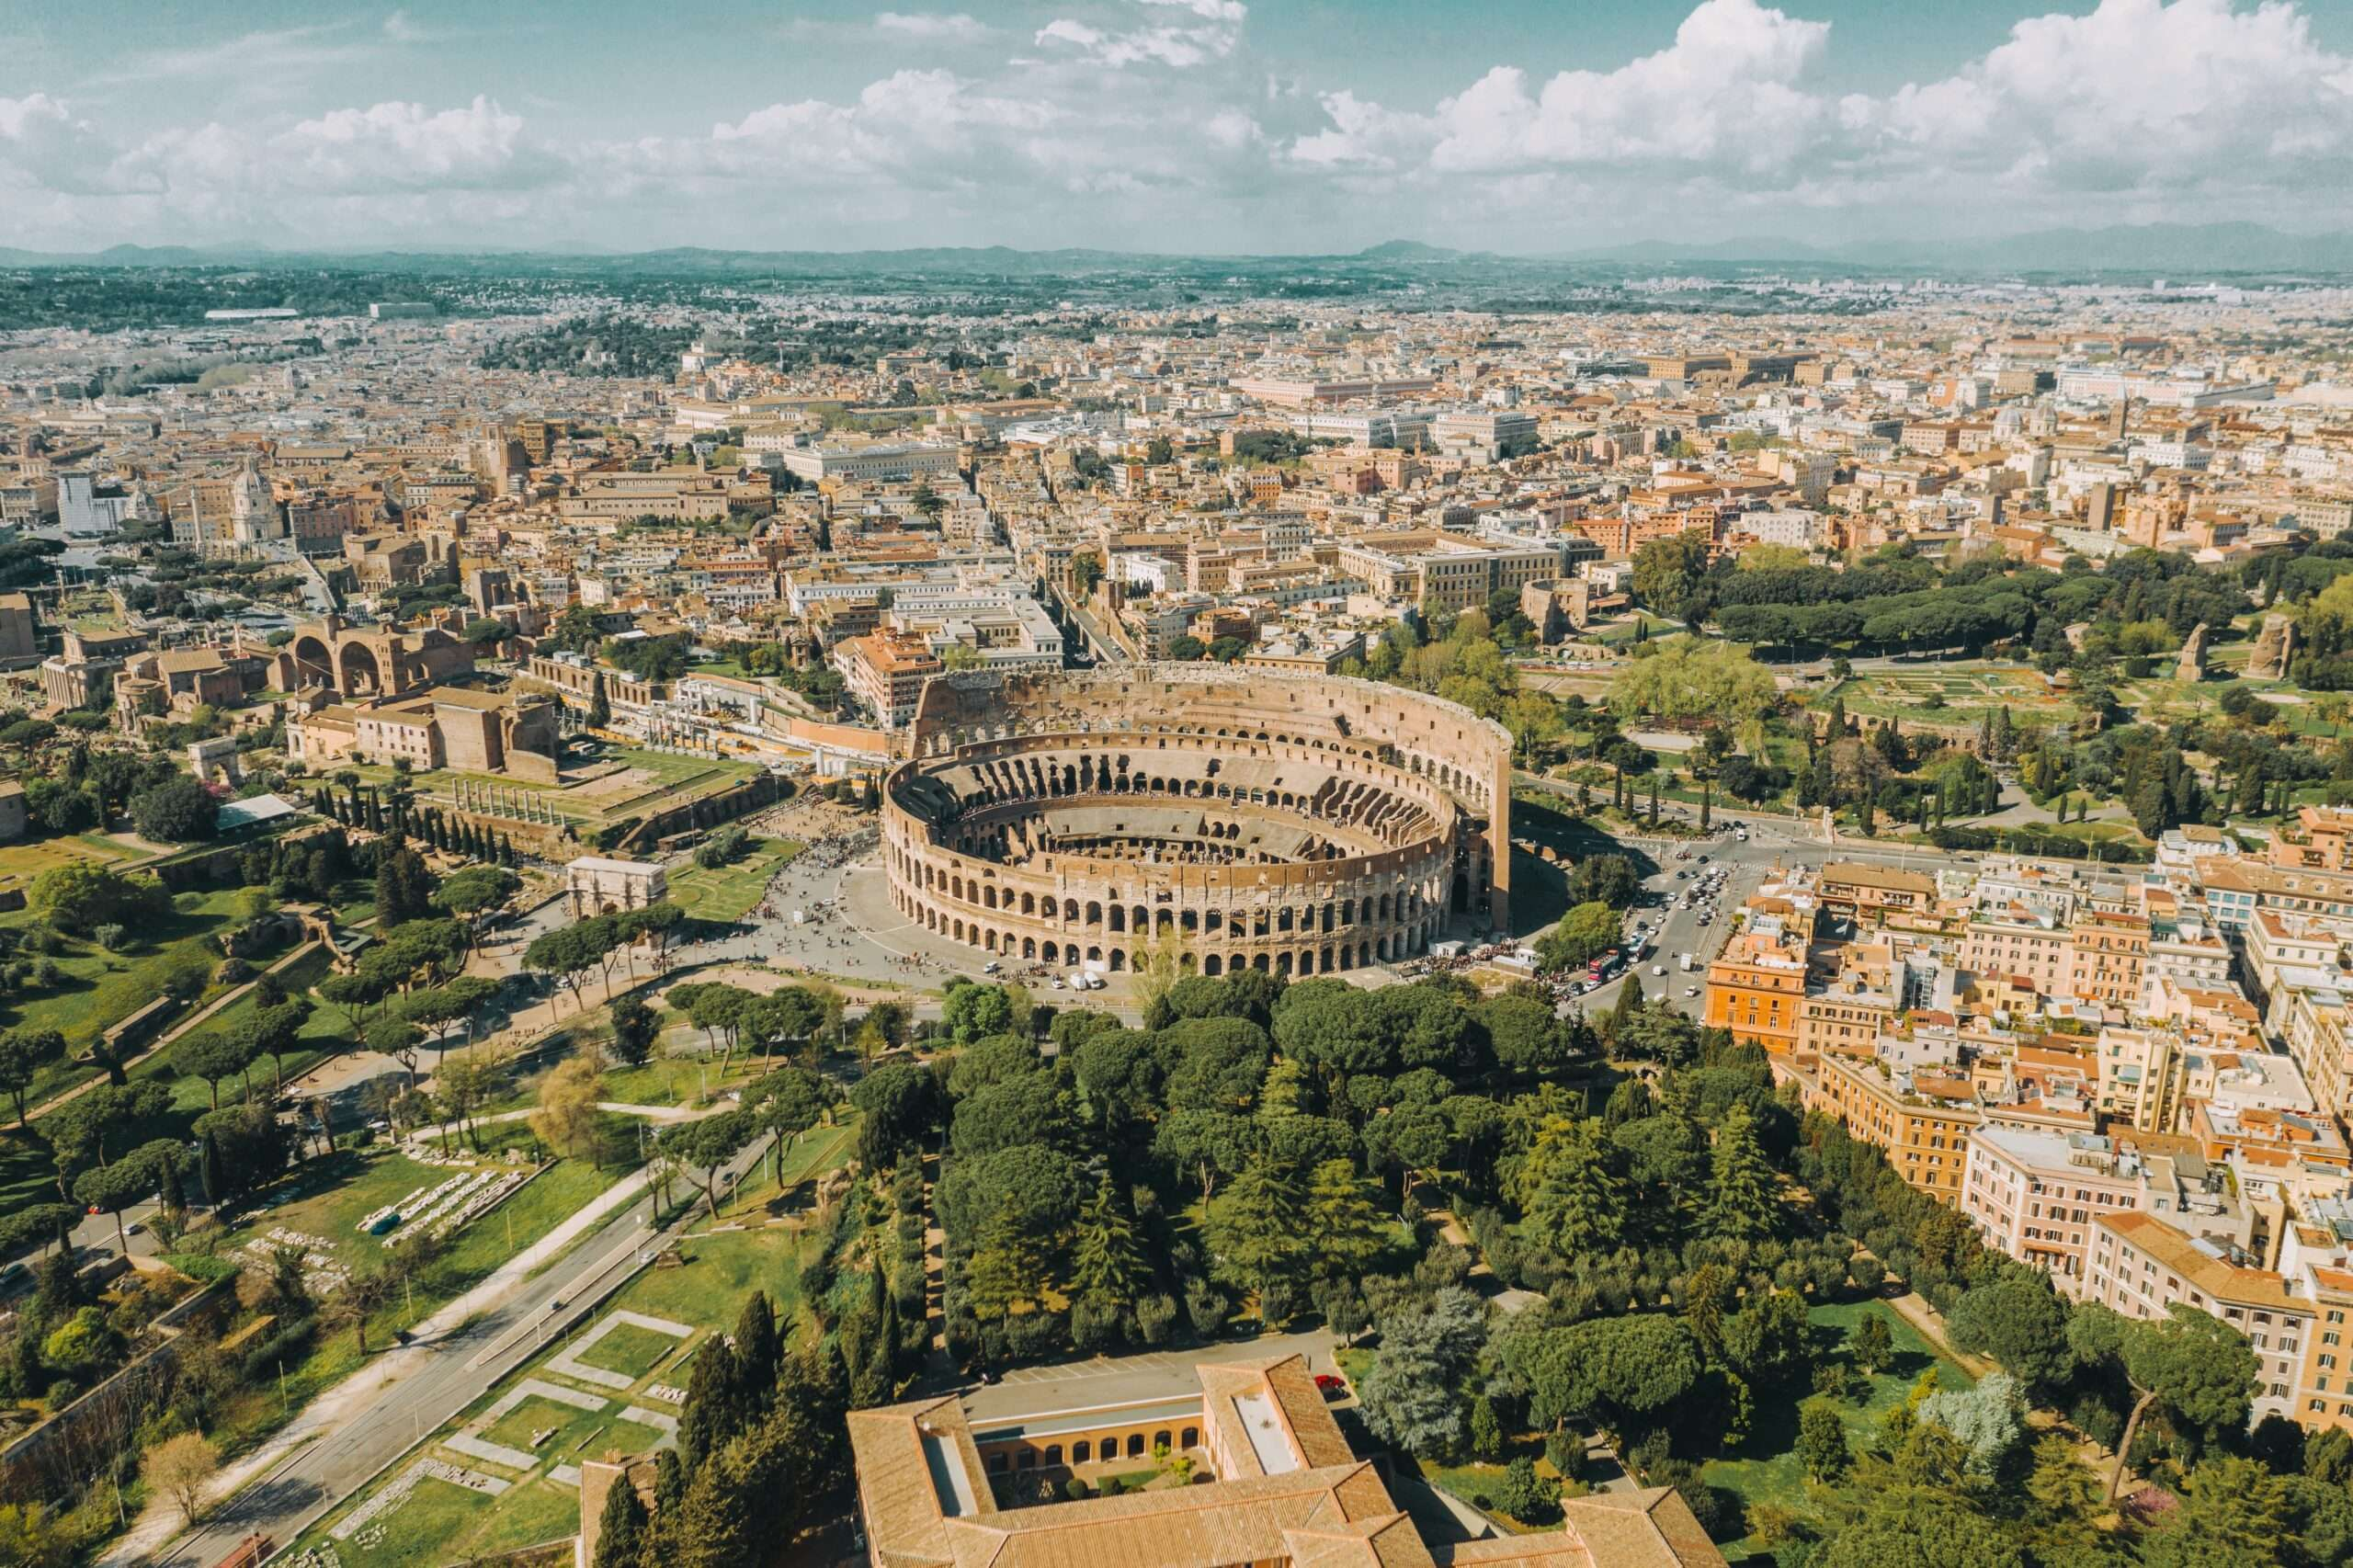 The Colosseum, one of the Best things to do in Rome